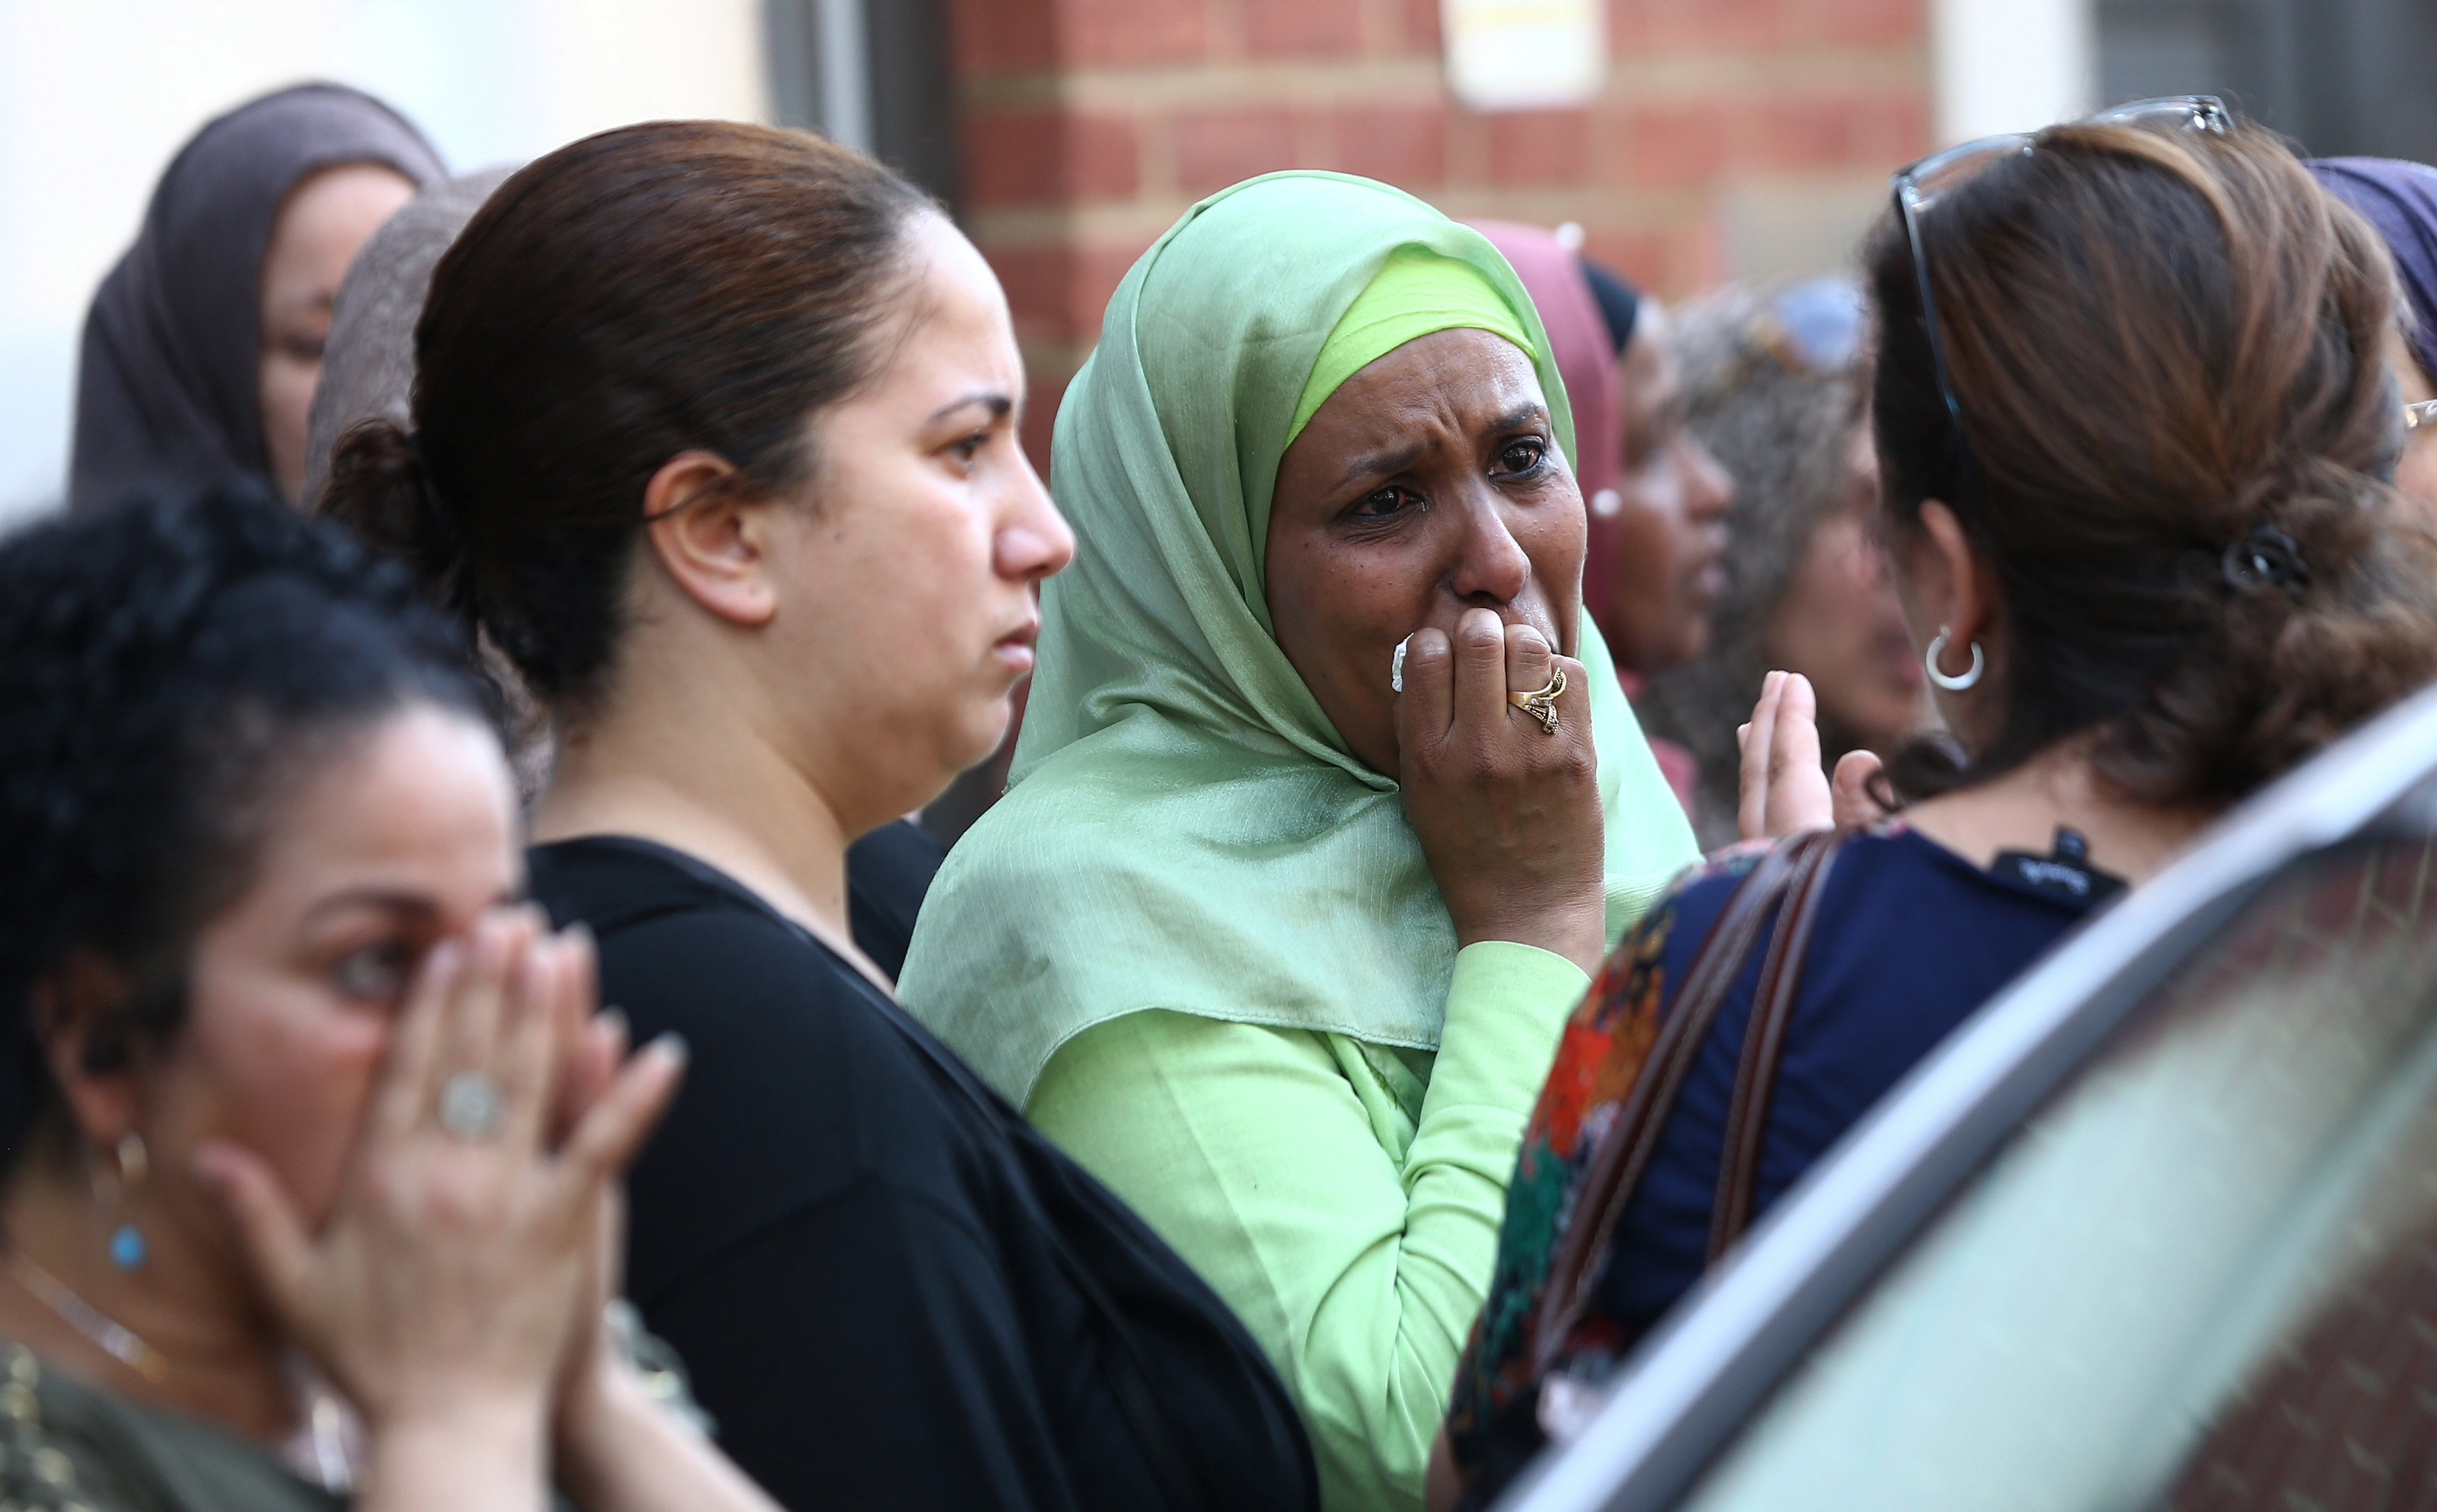 People react near a tower block severely damaged by a serious fire, in north Kensington, West London, Britain on June 14, 2017. (REUTERS/Neil Hall)